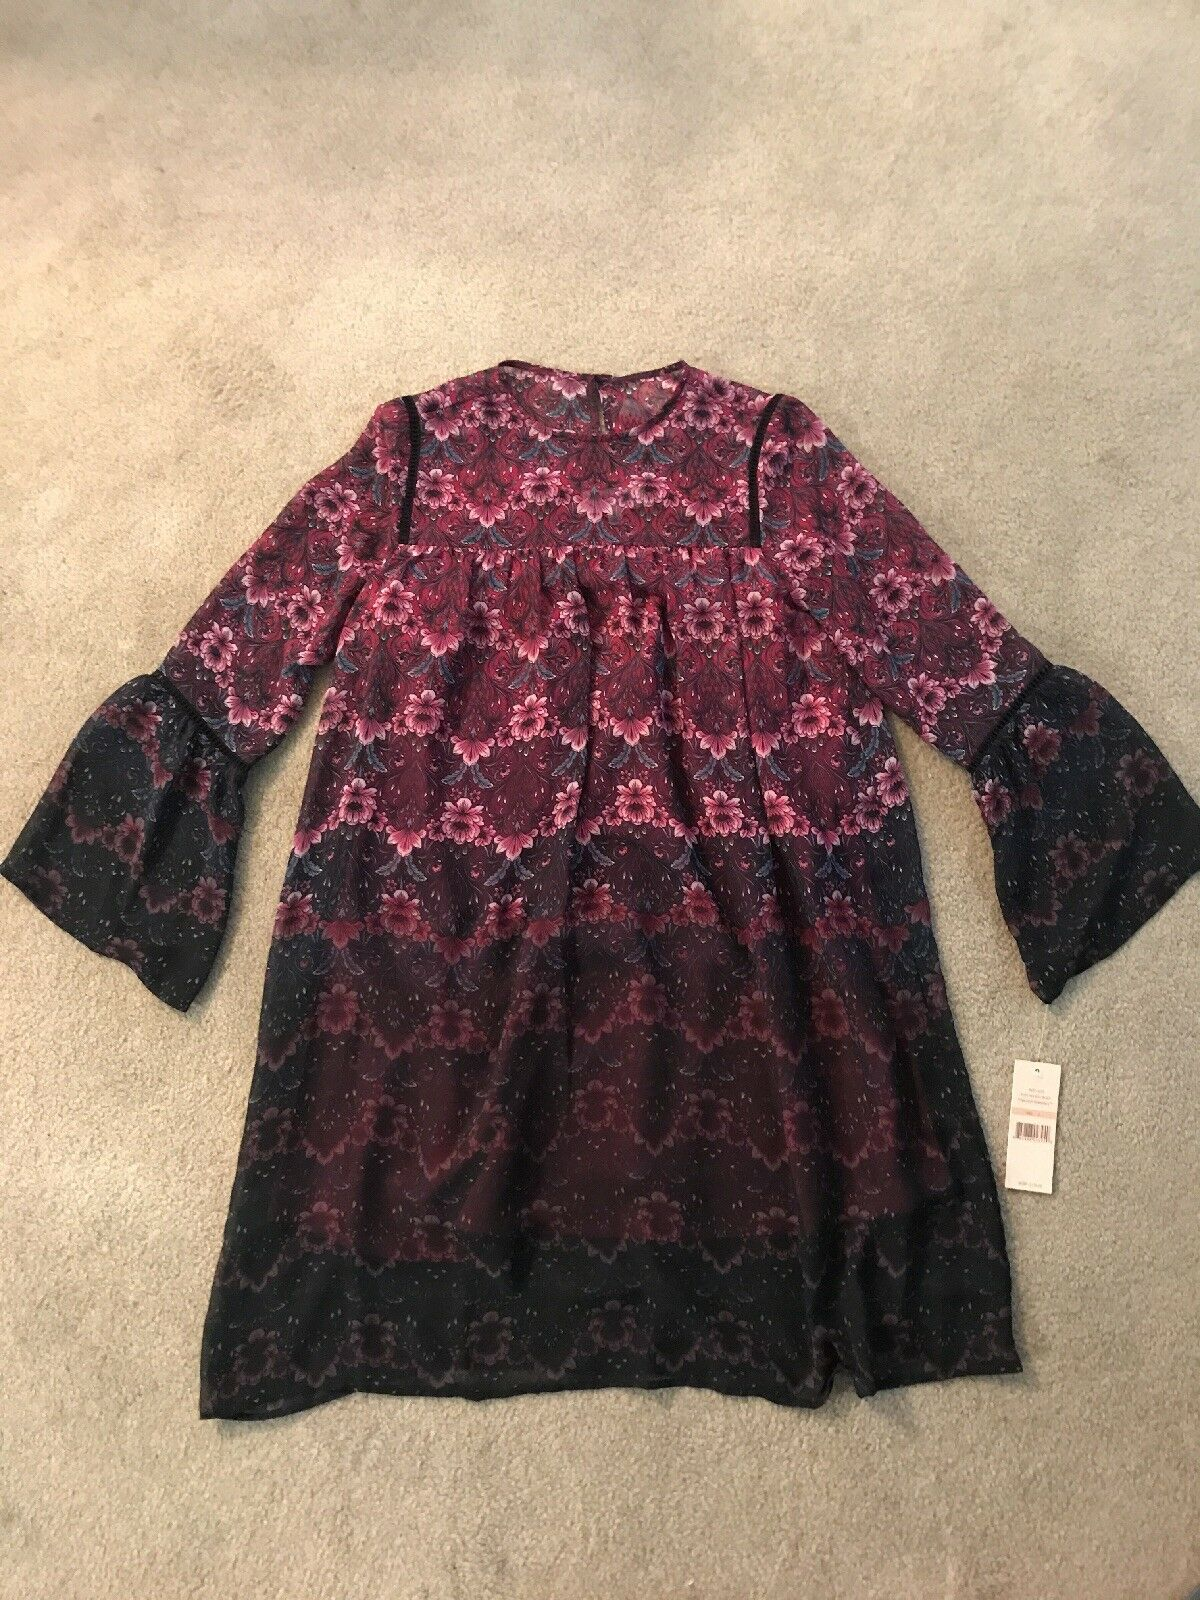 New With Tags Womens Nanette Lepore Dress, Size 2, Bohemian, hippie, deep pinks